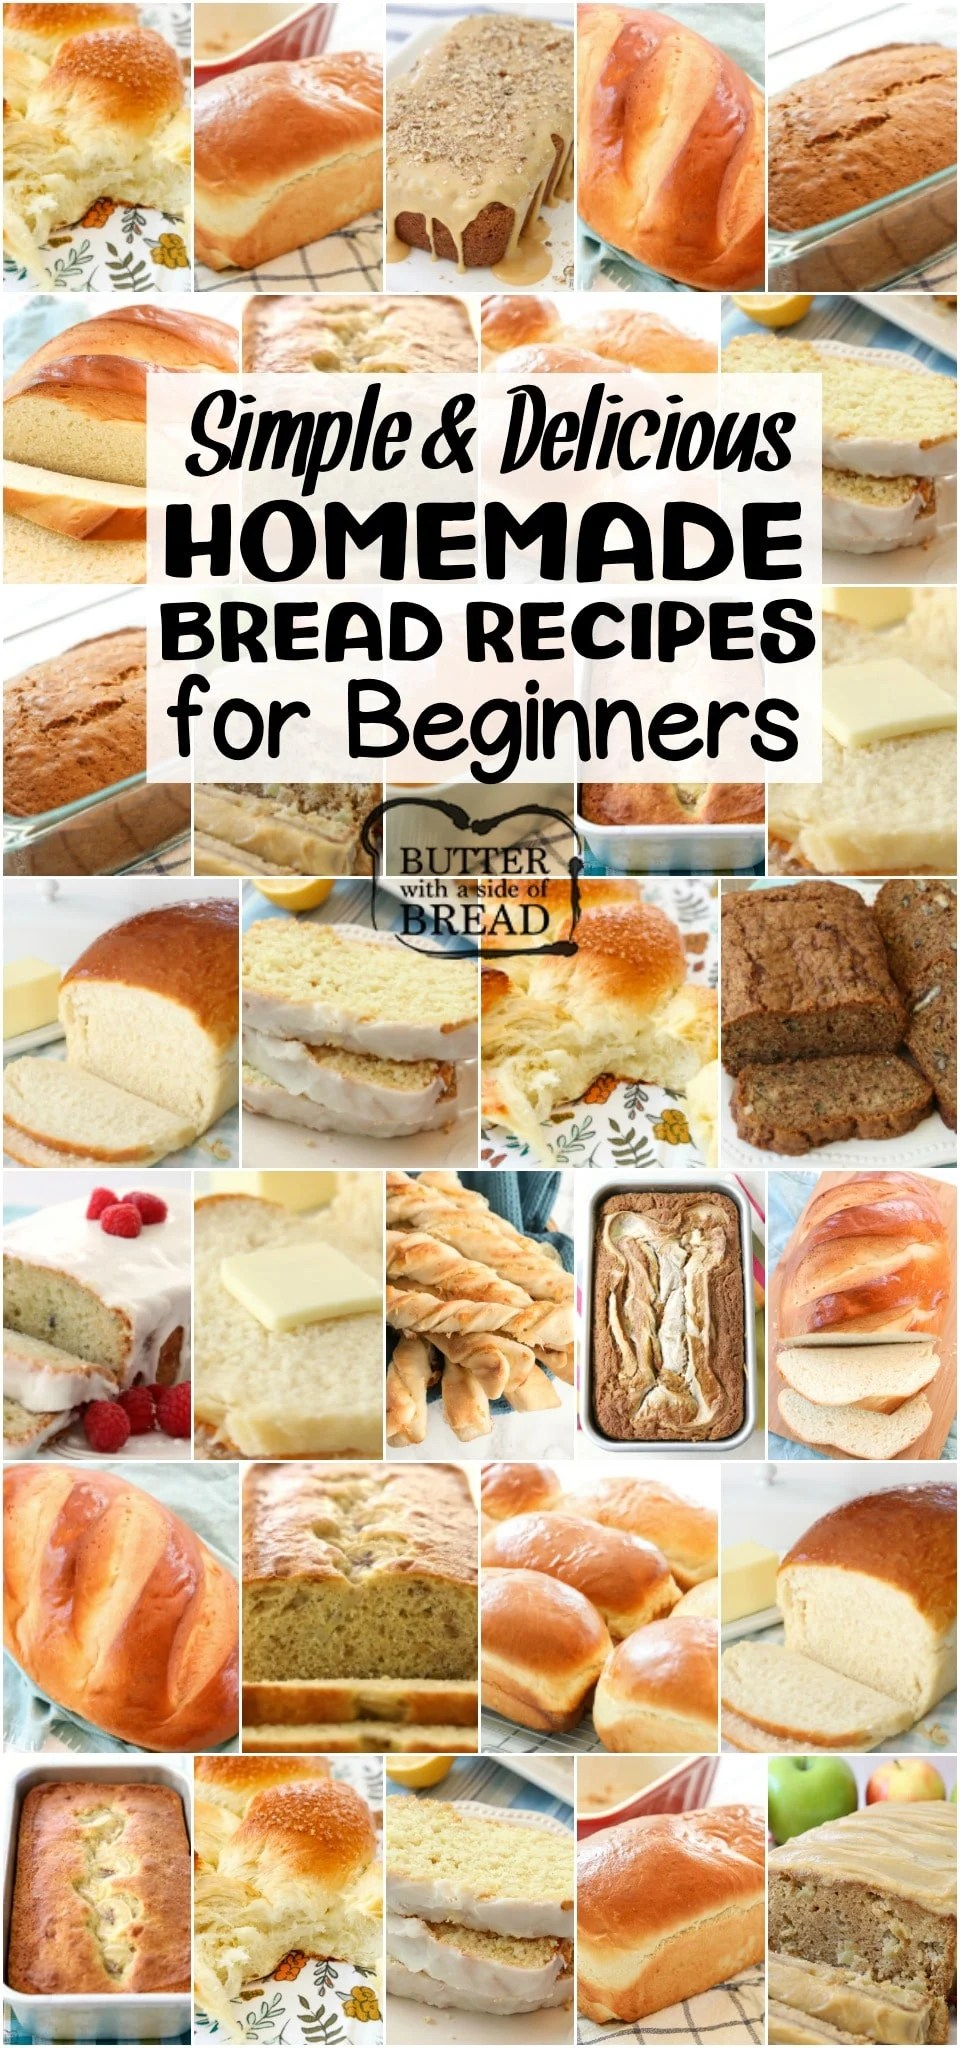 Easy Homemade Bread Recipes for Beginners~ from sweet to savory, quick breads to yeast breads, you're going to love this bread! Most popular easy bread recipes we can't get enough of. If you want to make bread, START HERE! #bread #baking #homemade #breadrecipe #recipe #homemadebread #howtomakebread from BUTTER WITH A SIDE OF BREAD